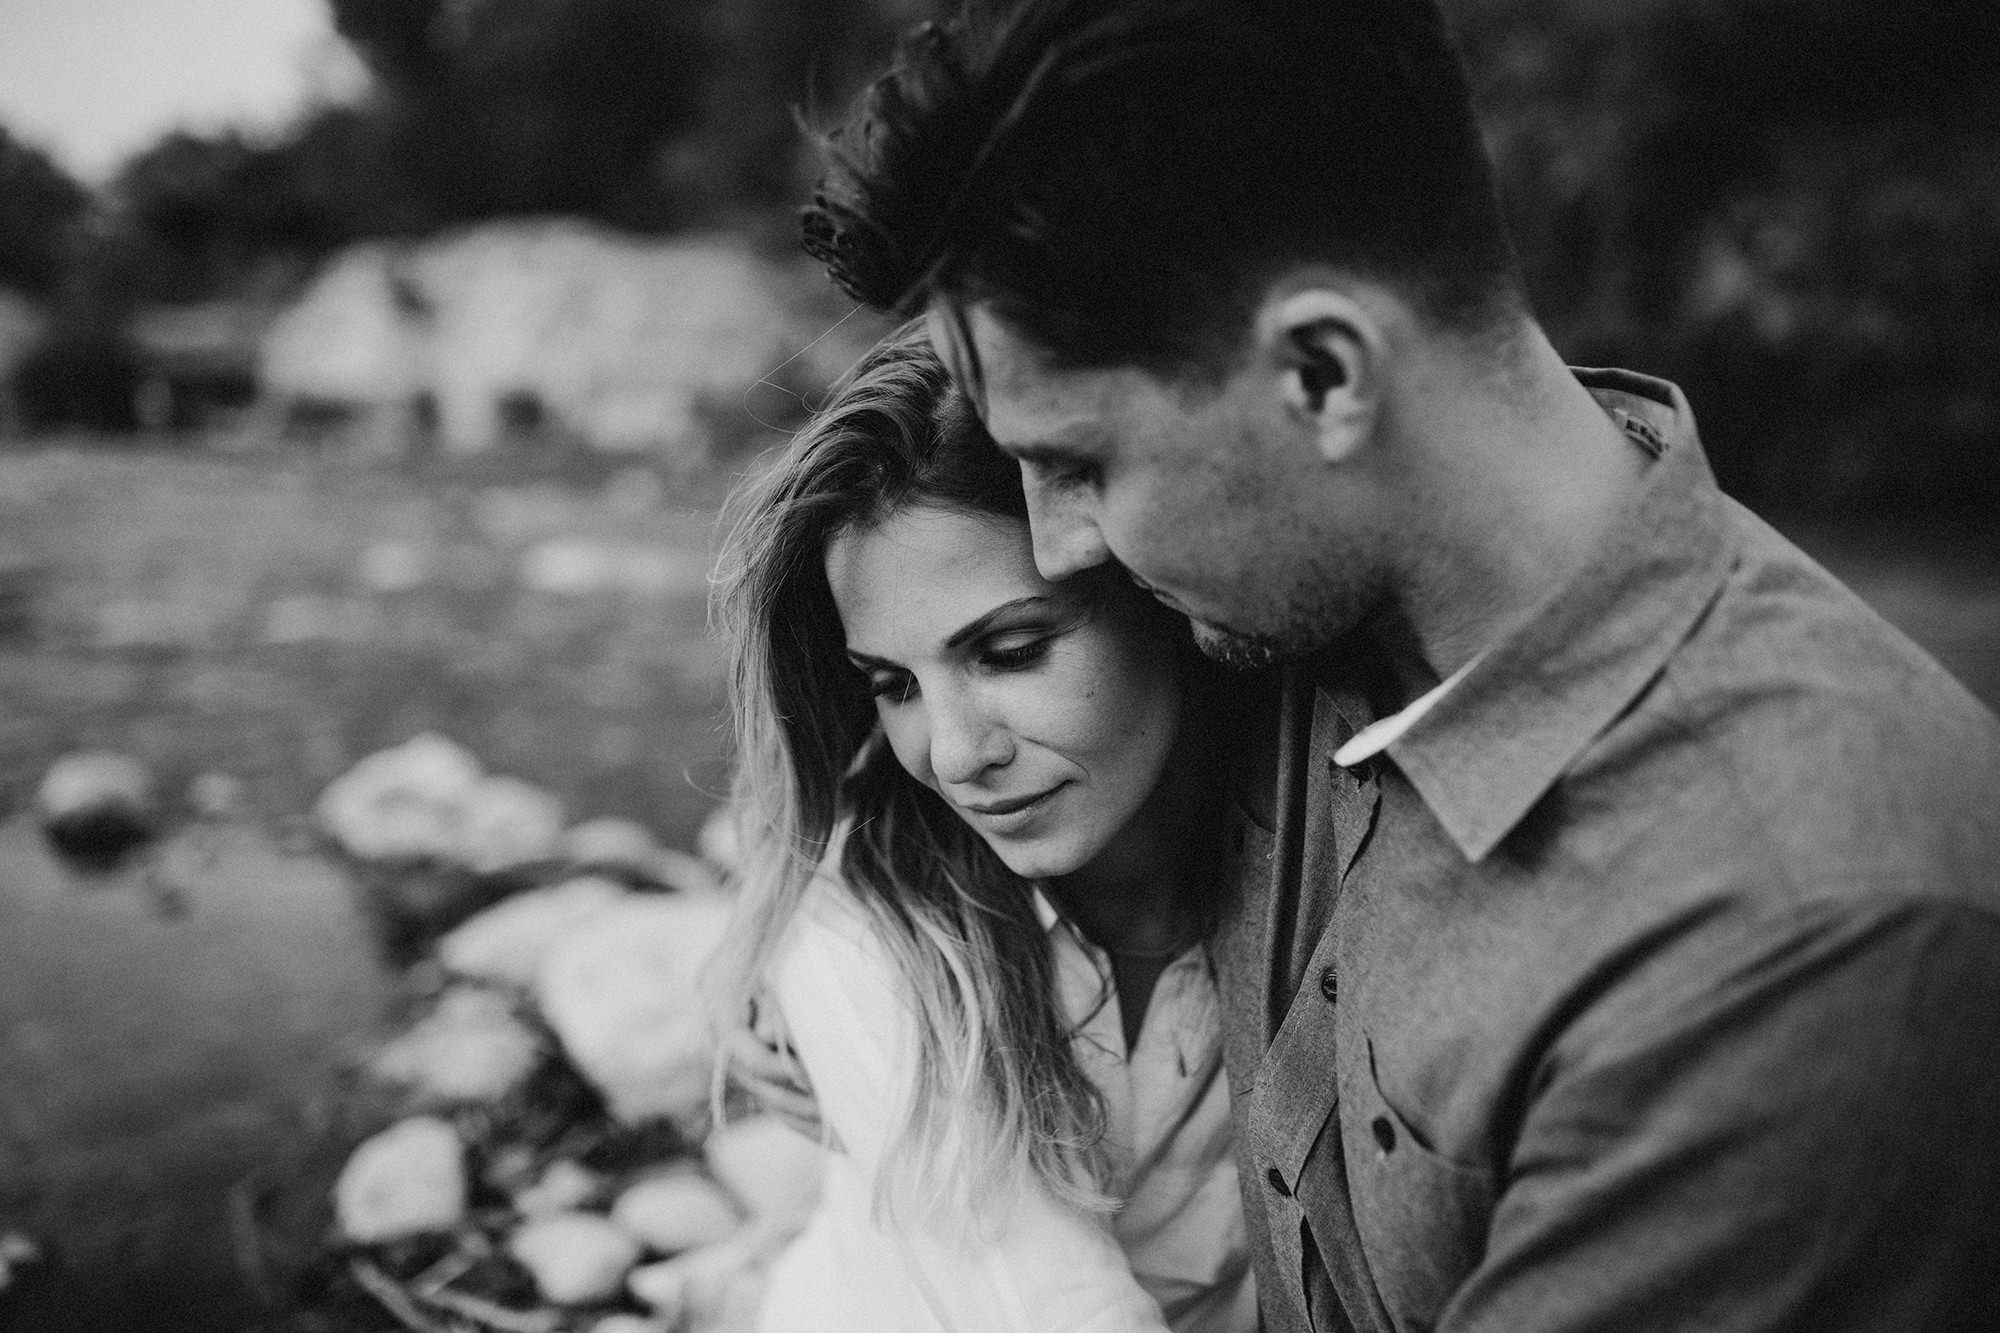 engagement_session_ardeche_river_C+M_neupapphotography-15.jpg